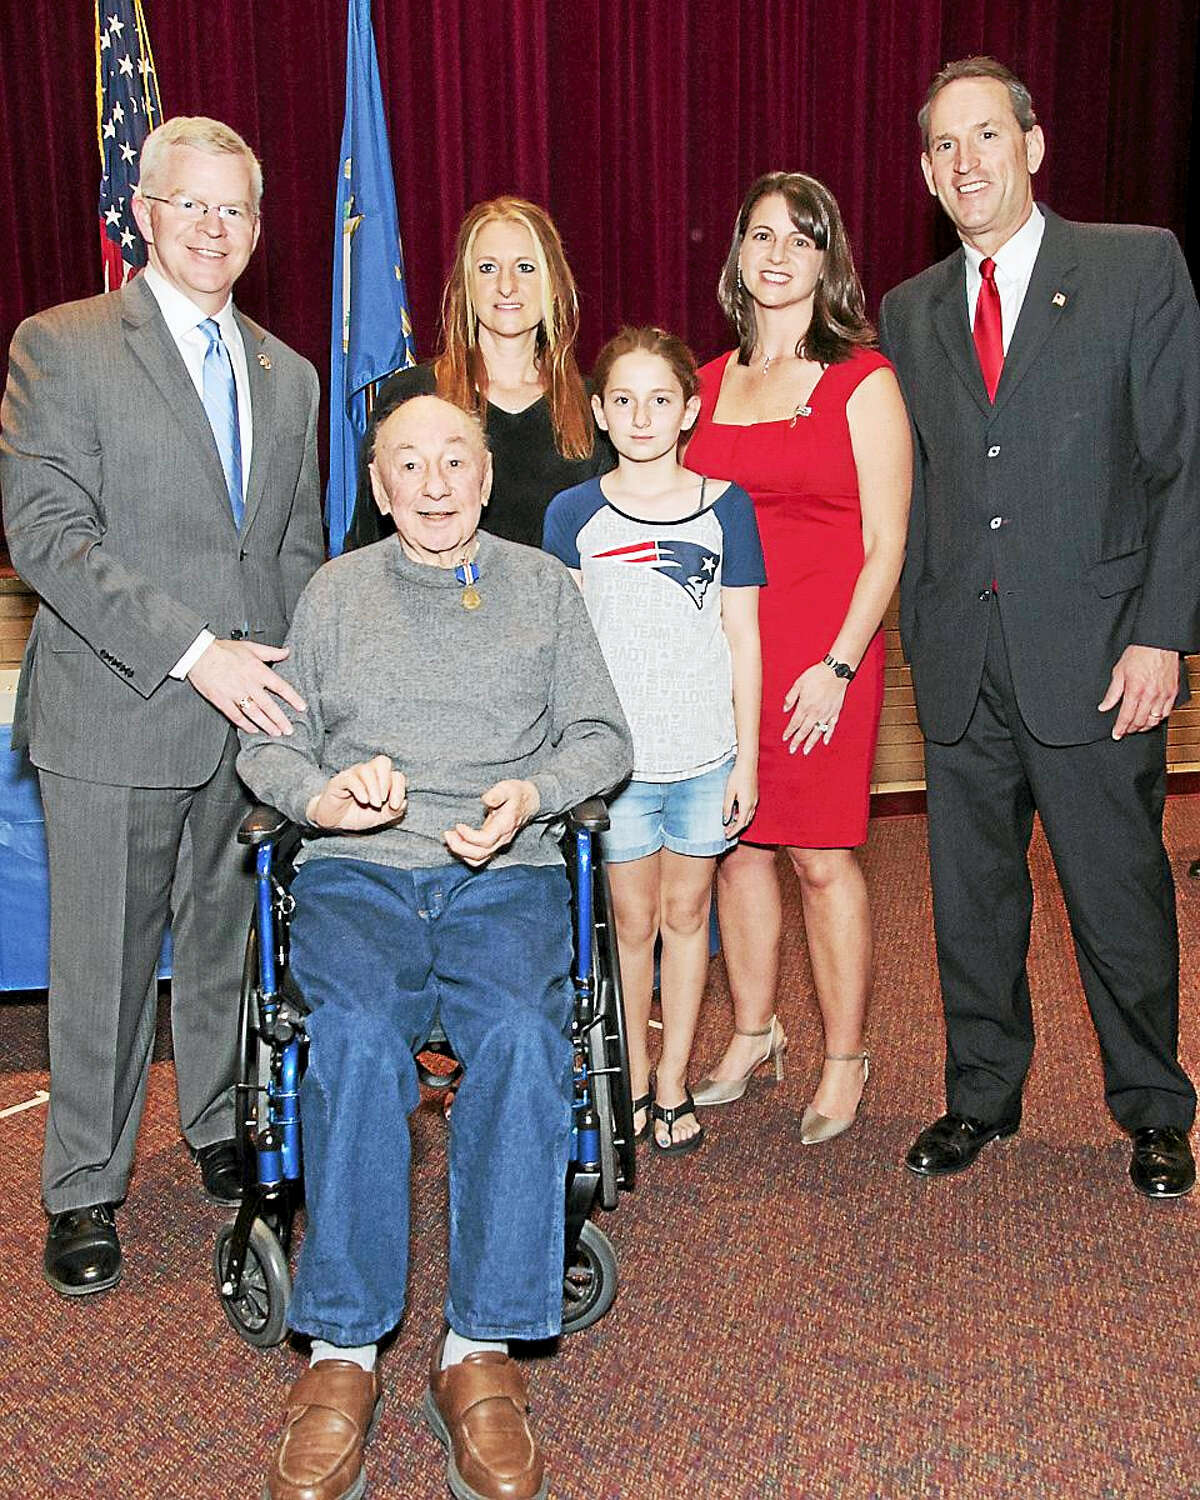 Veteran Richard Lucco poses with family and Department of Veterans' Affairs Commissioner Sean Connolly, state Rep. Christie Carpino and state Sen. Paul Doyle after being presented with the Connecticut Wartime Service Medal at a ceremony at Cromwell Middle School.